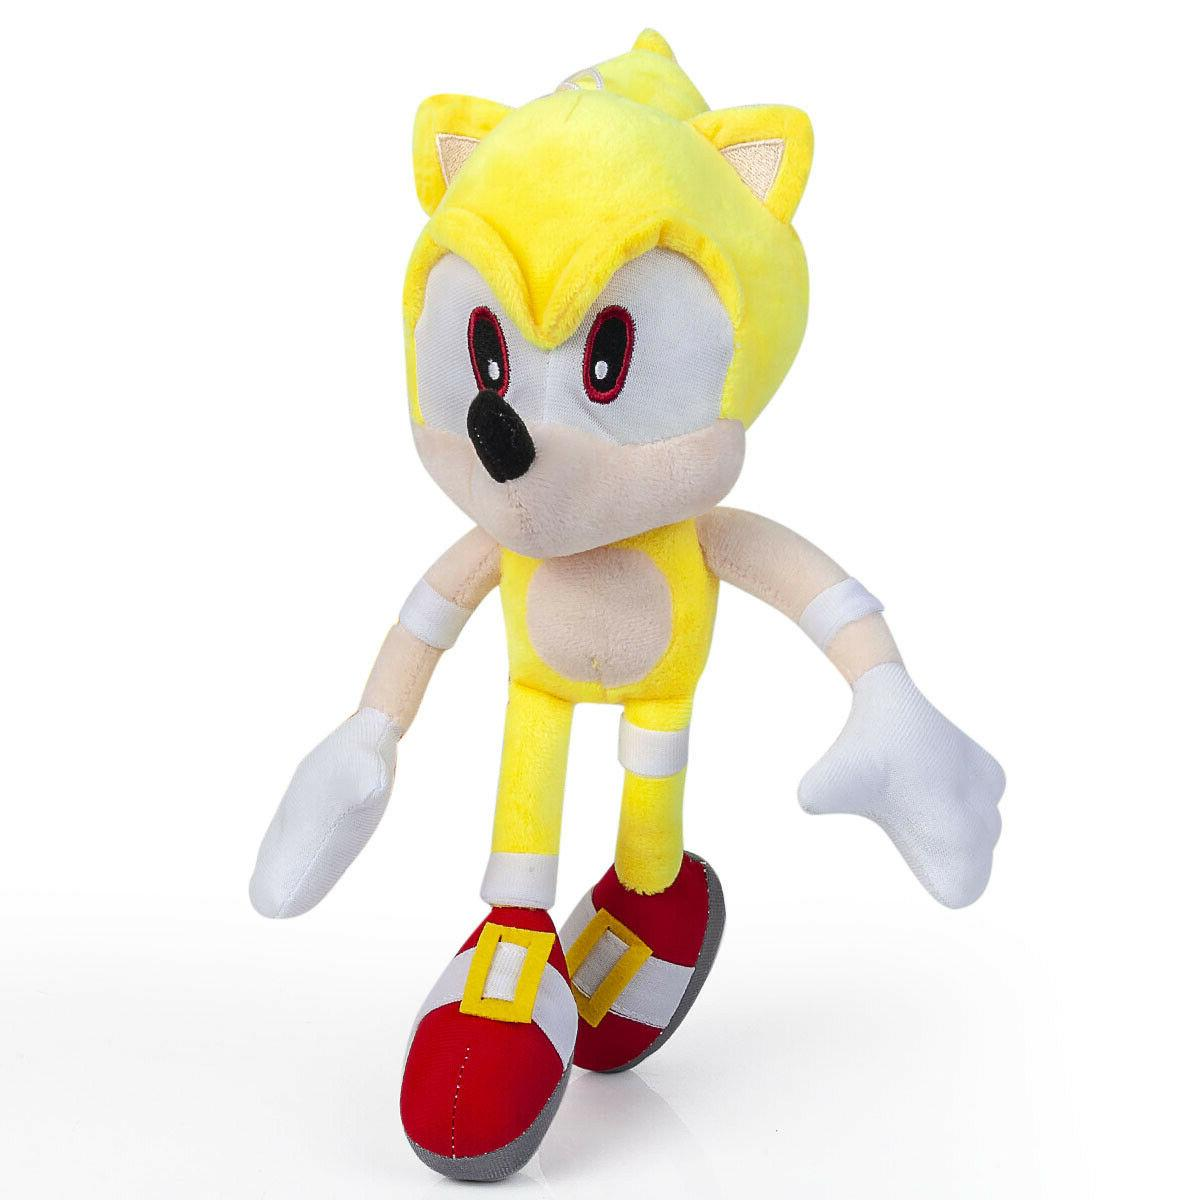 Super Sonic Plush Doll Stuffed Animal Plushie Soft Toy Collection 13